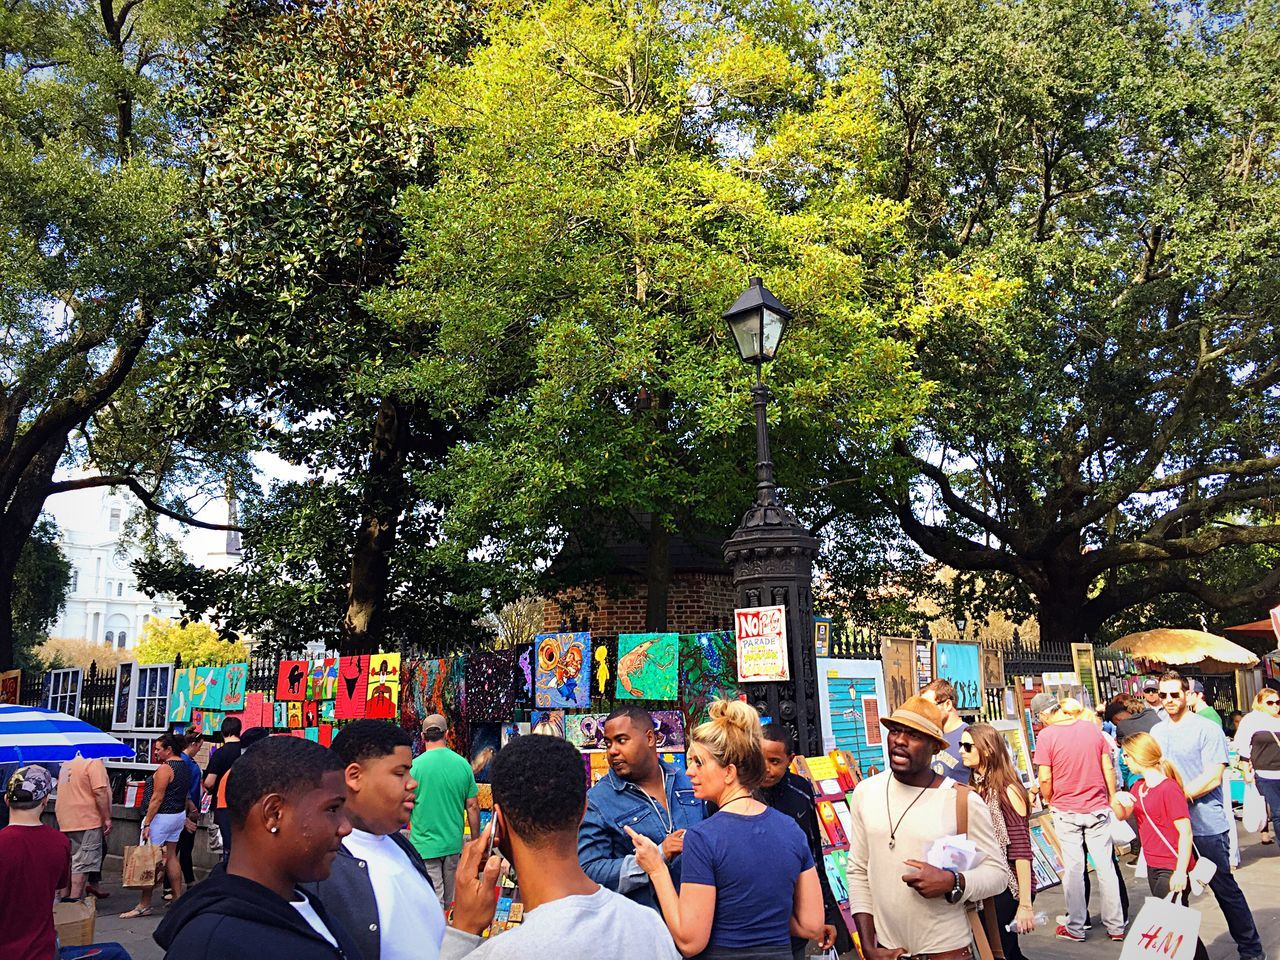 Jackson Square Tree Large Group Of People Growth Real People Outdoors Multi Colored Men Nature Crowd Day People Adults Only Adult Art ArtWork